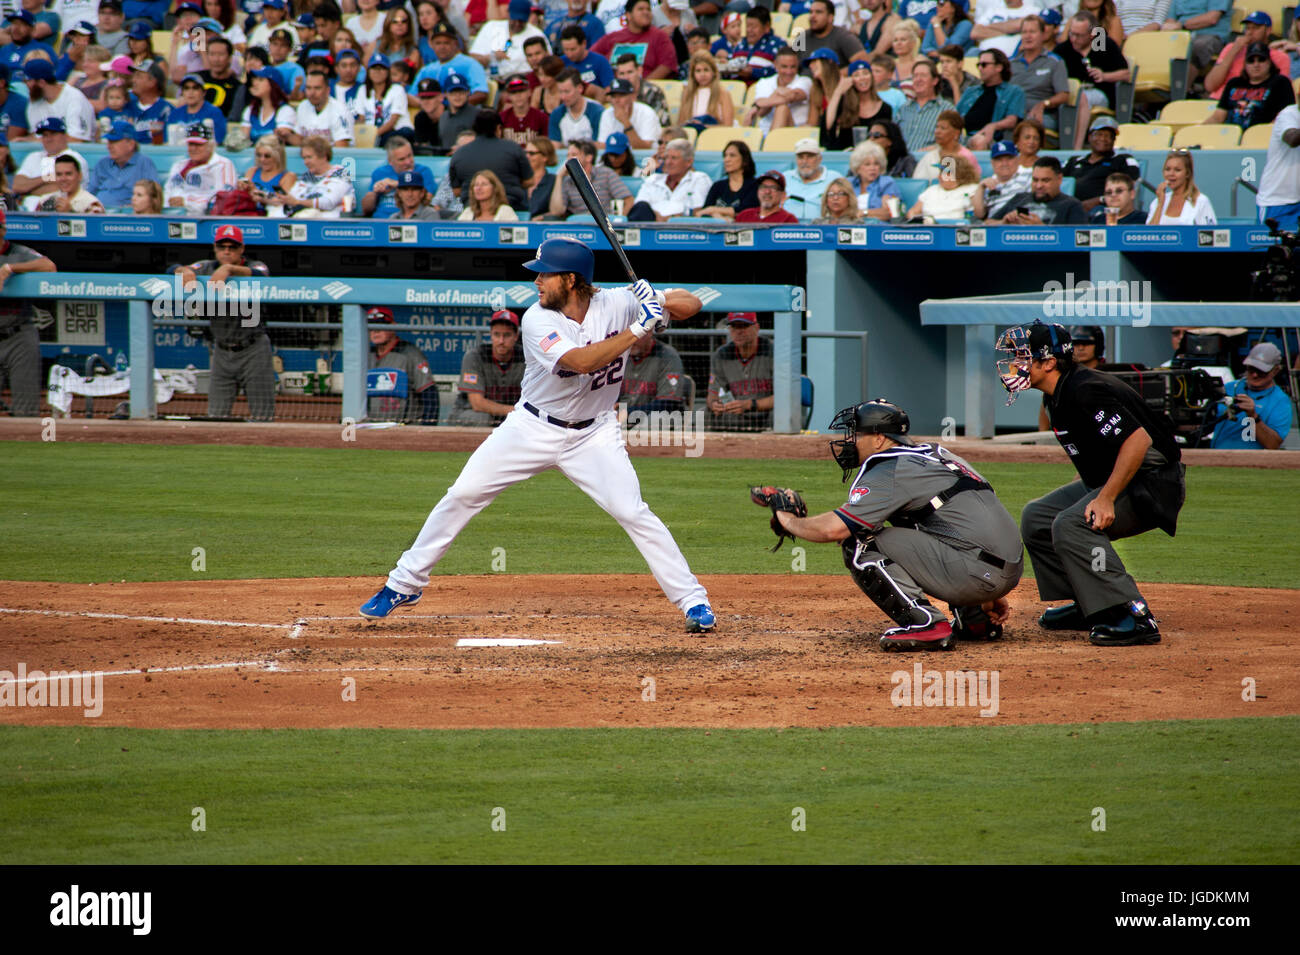 Dodger star pitcher Clayton Kershaw is also a good hitter at bat in a game at Dodger Stadium in Los Angeles, CA - Stock Image